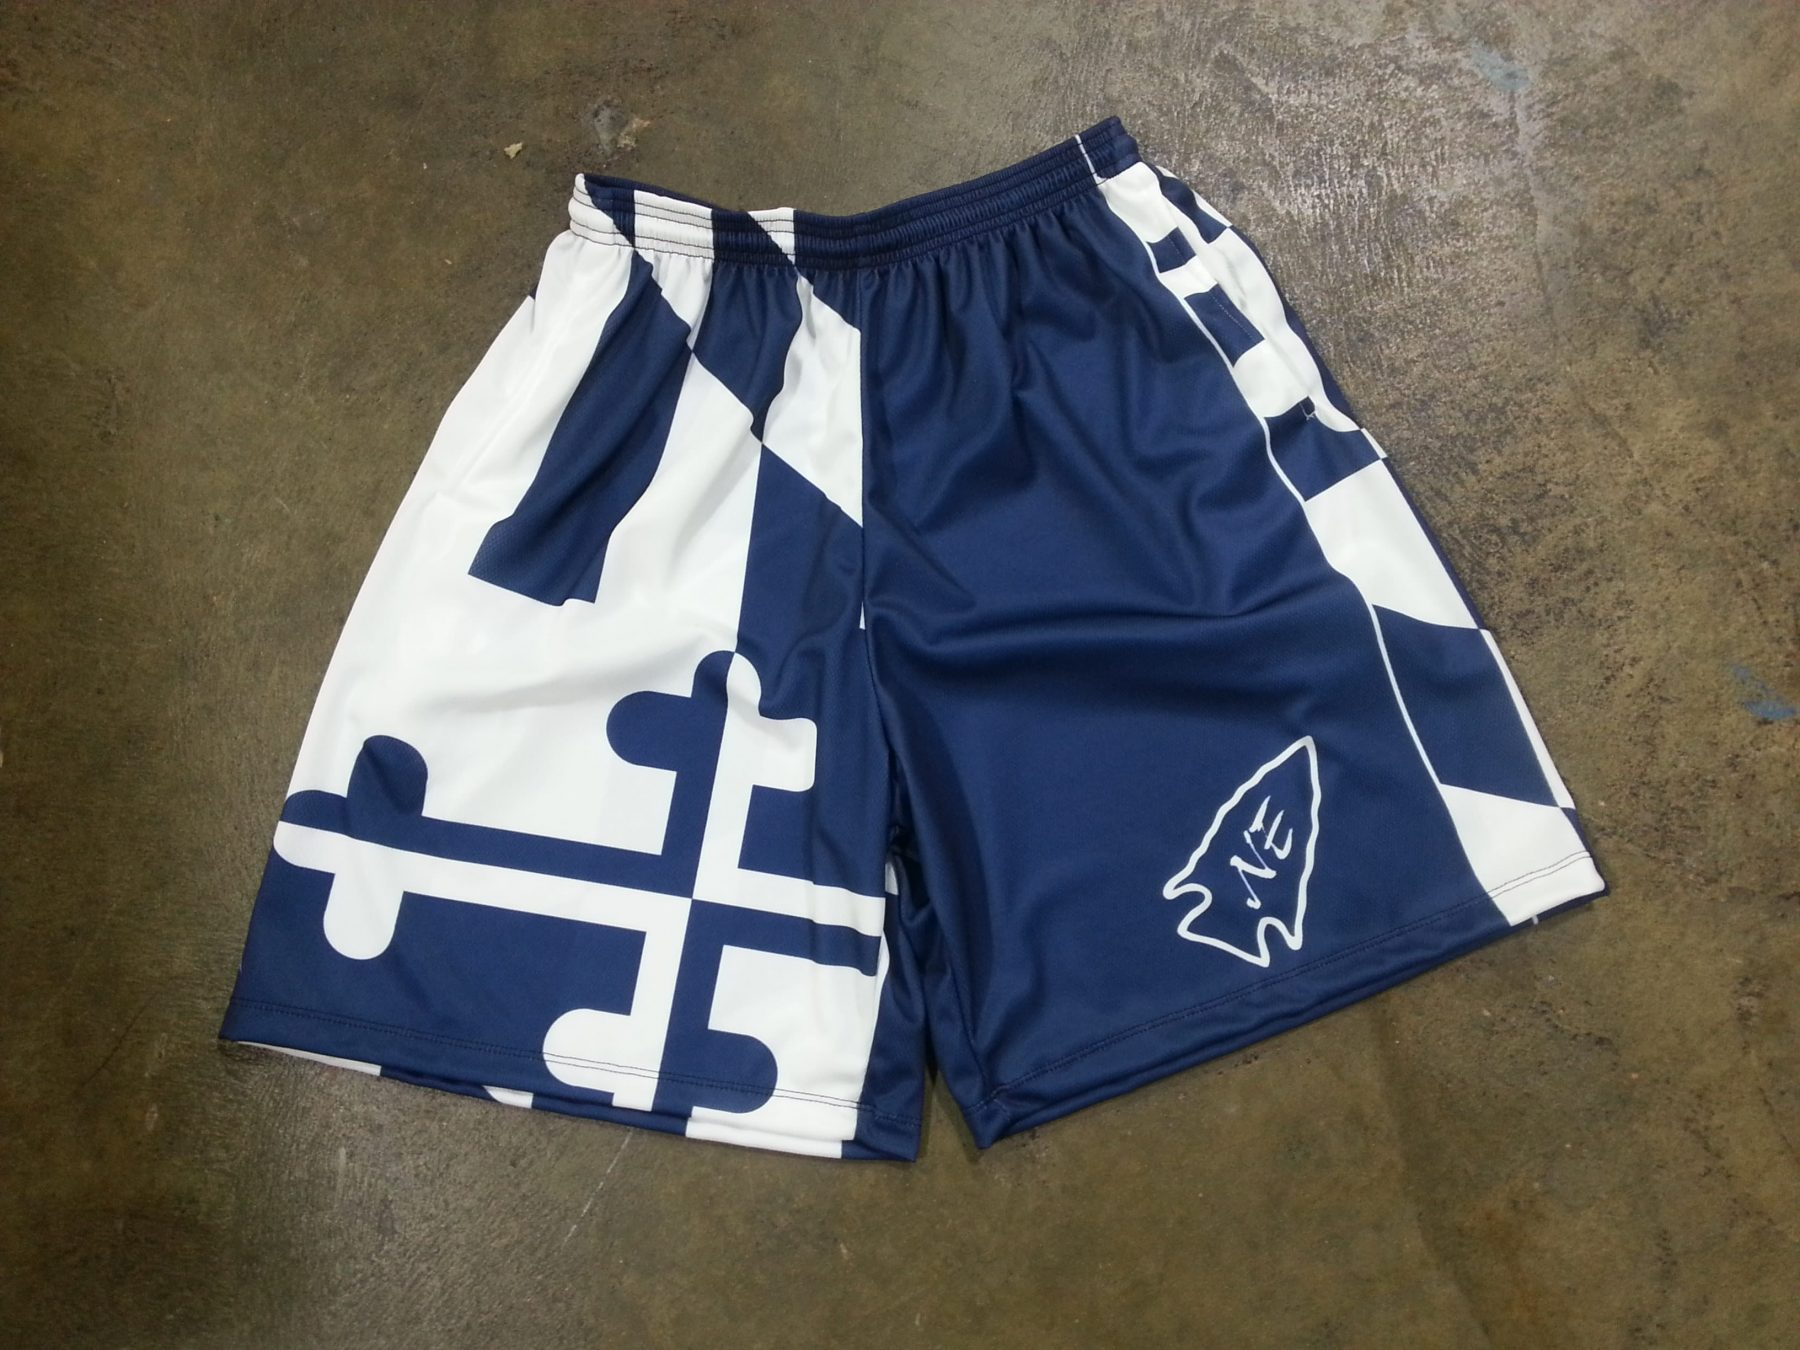 lacrosse shorts in maryland